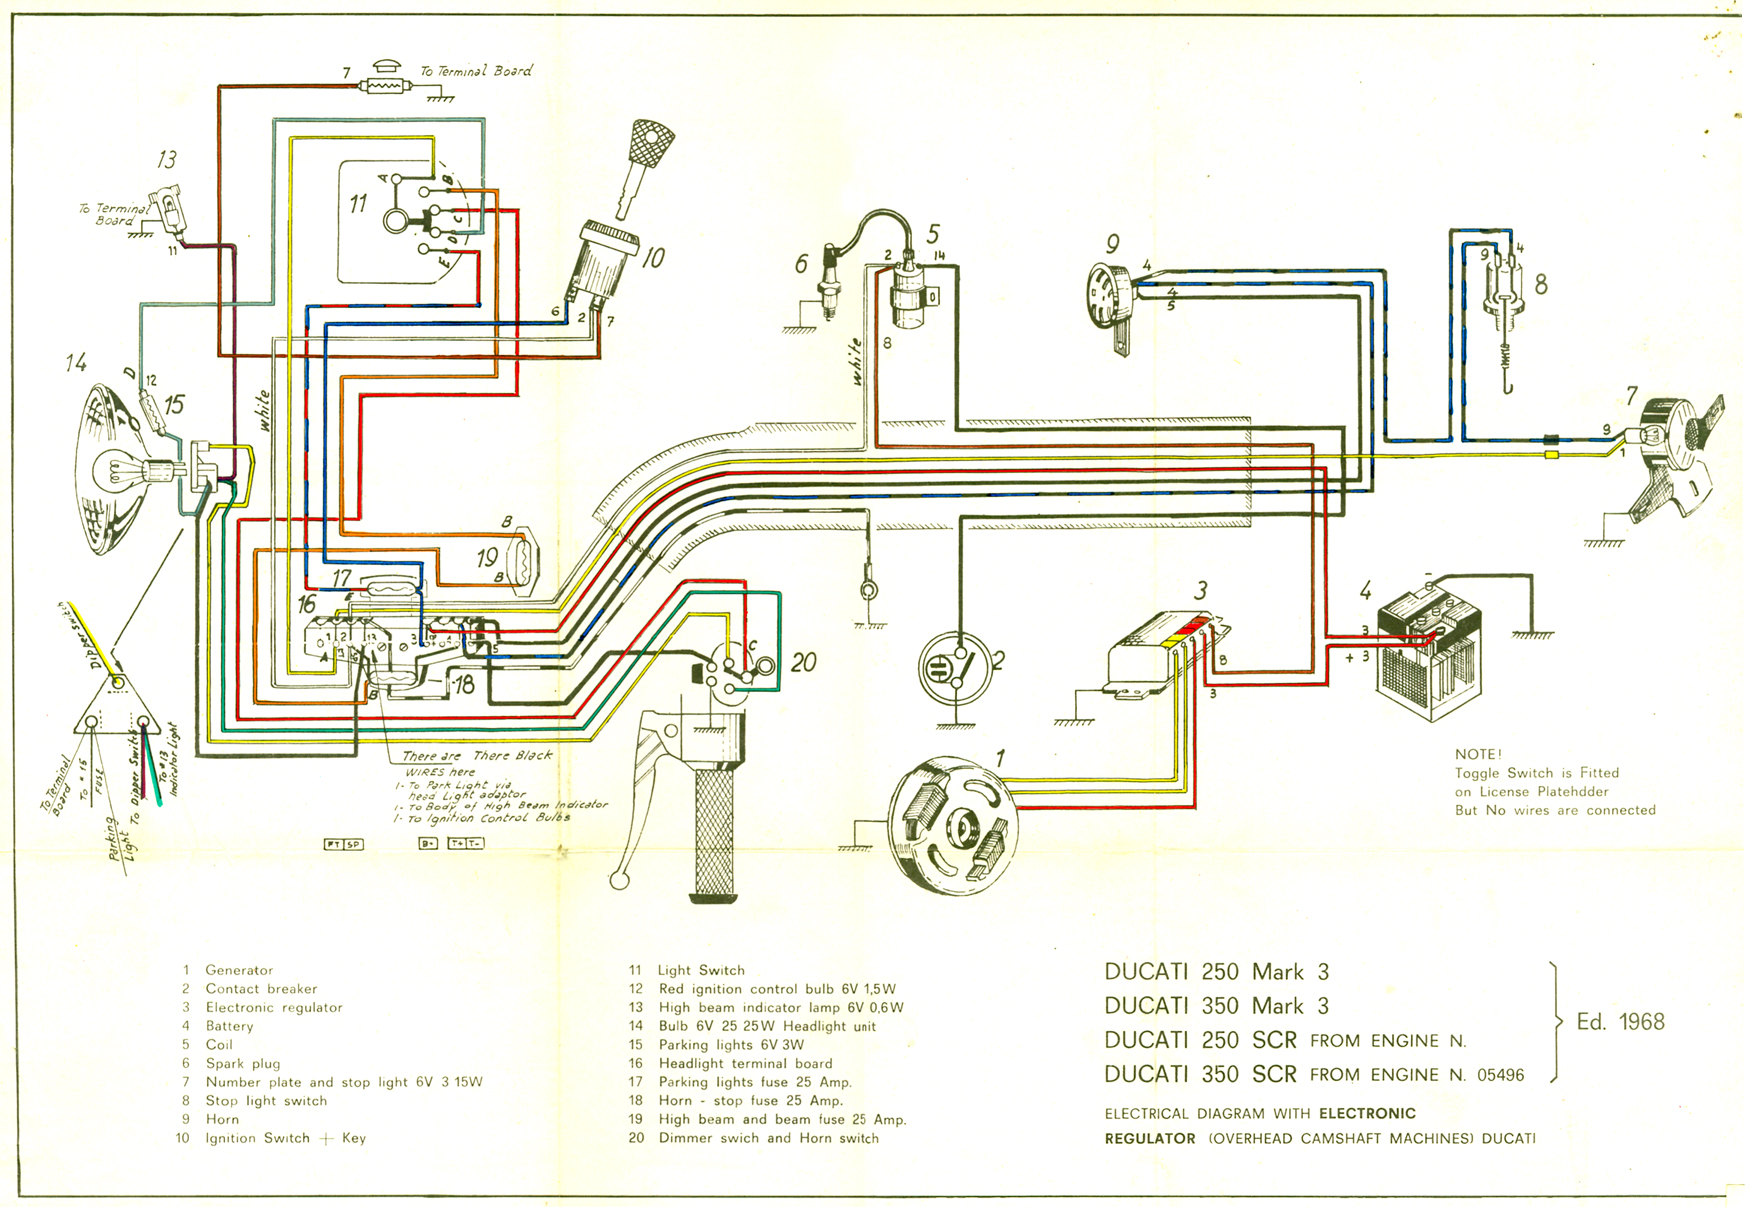 wiring_diagram wiring diagram needed ducati ms the ultimate ducati forum mini chopper wiring diagram at creativeand.co